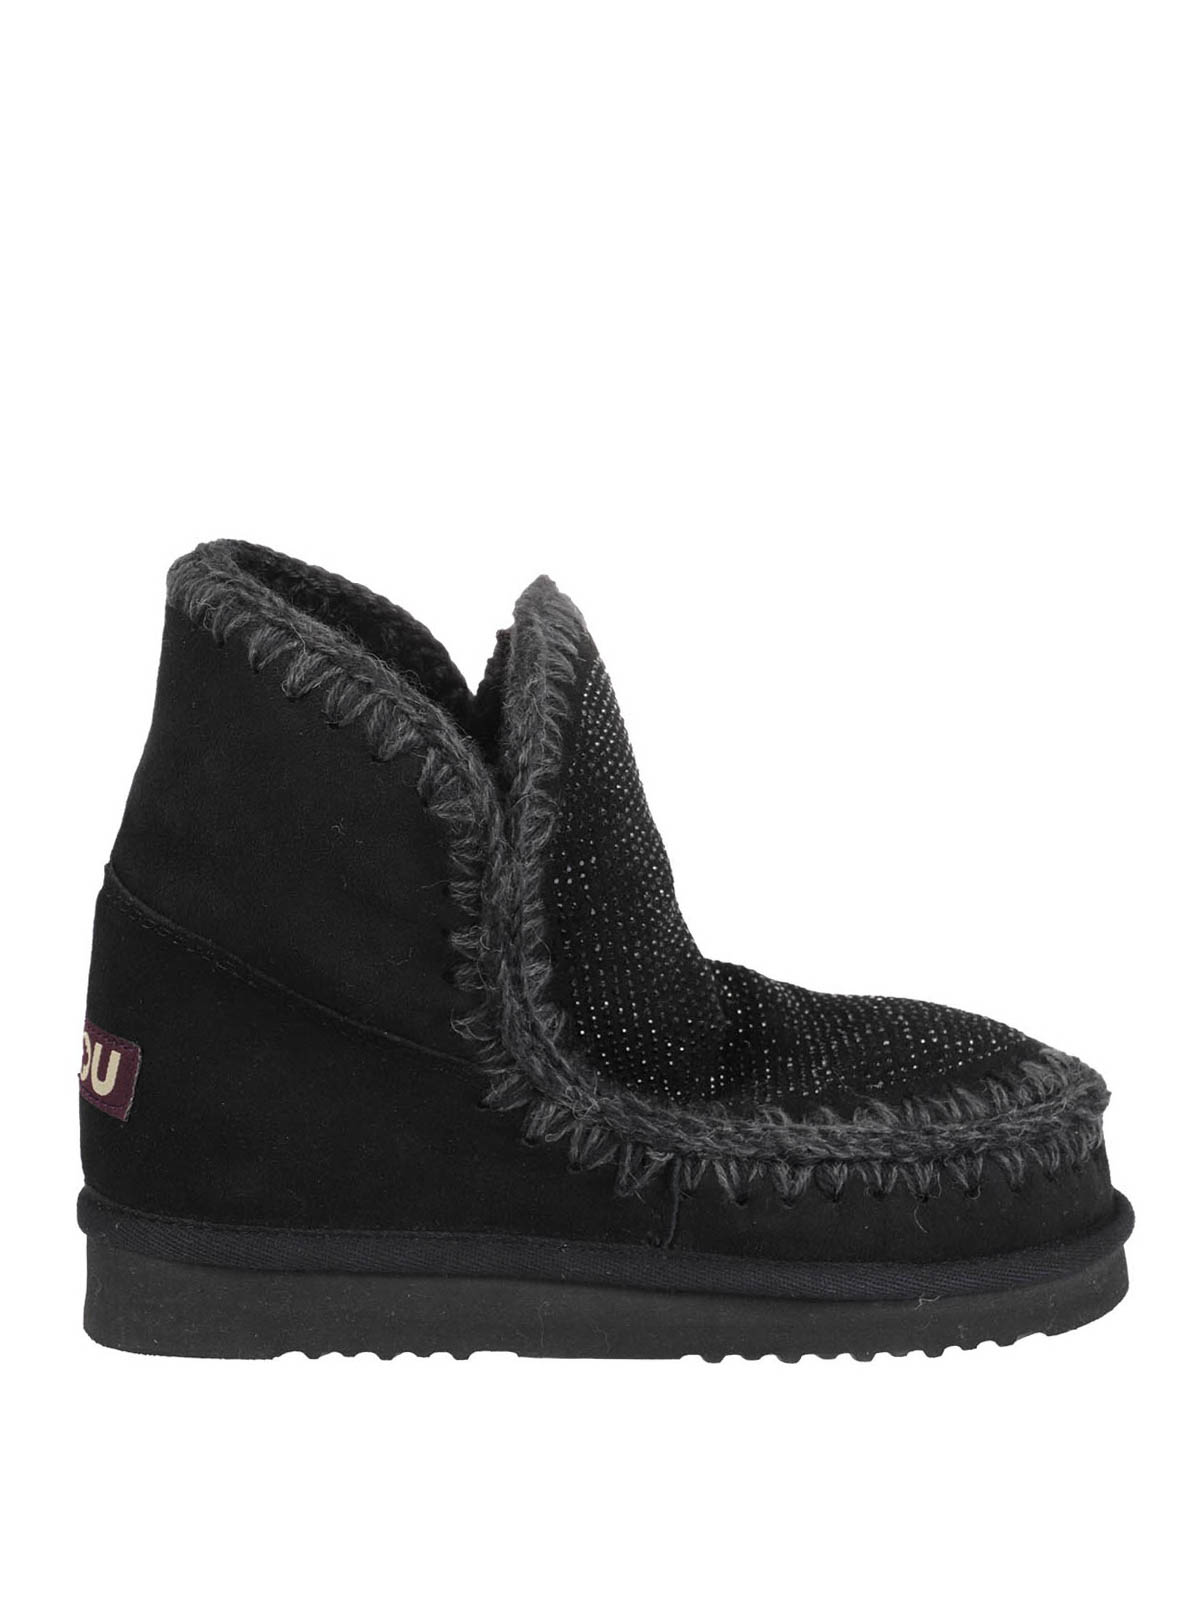 Mou ESKIMO18 EMBELLISHED BOOTIES